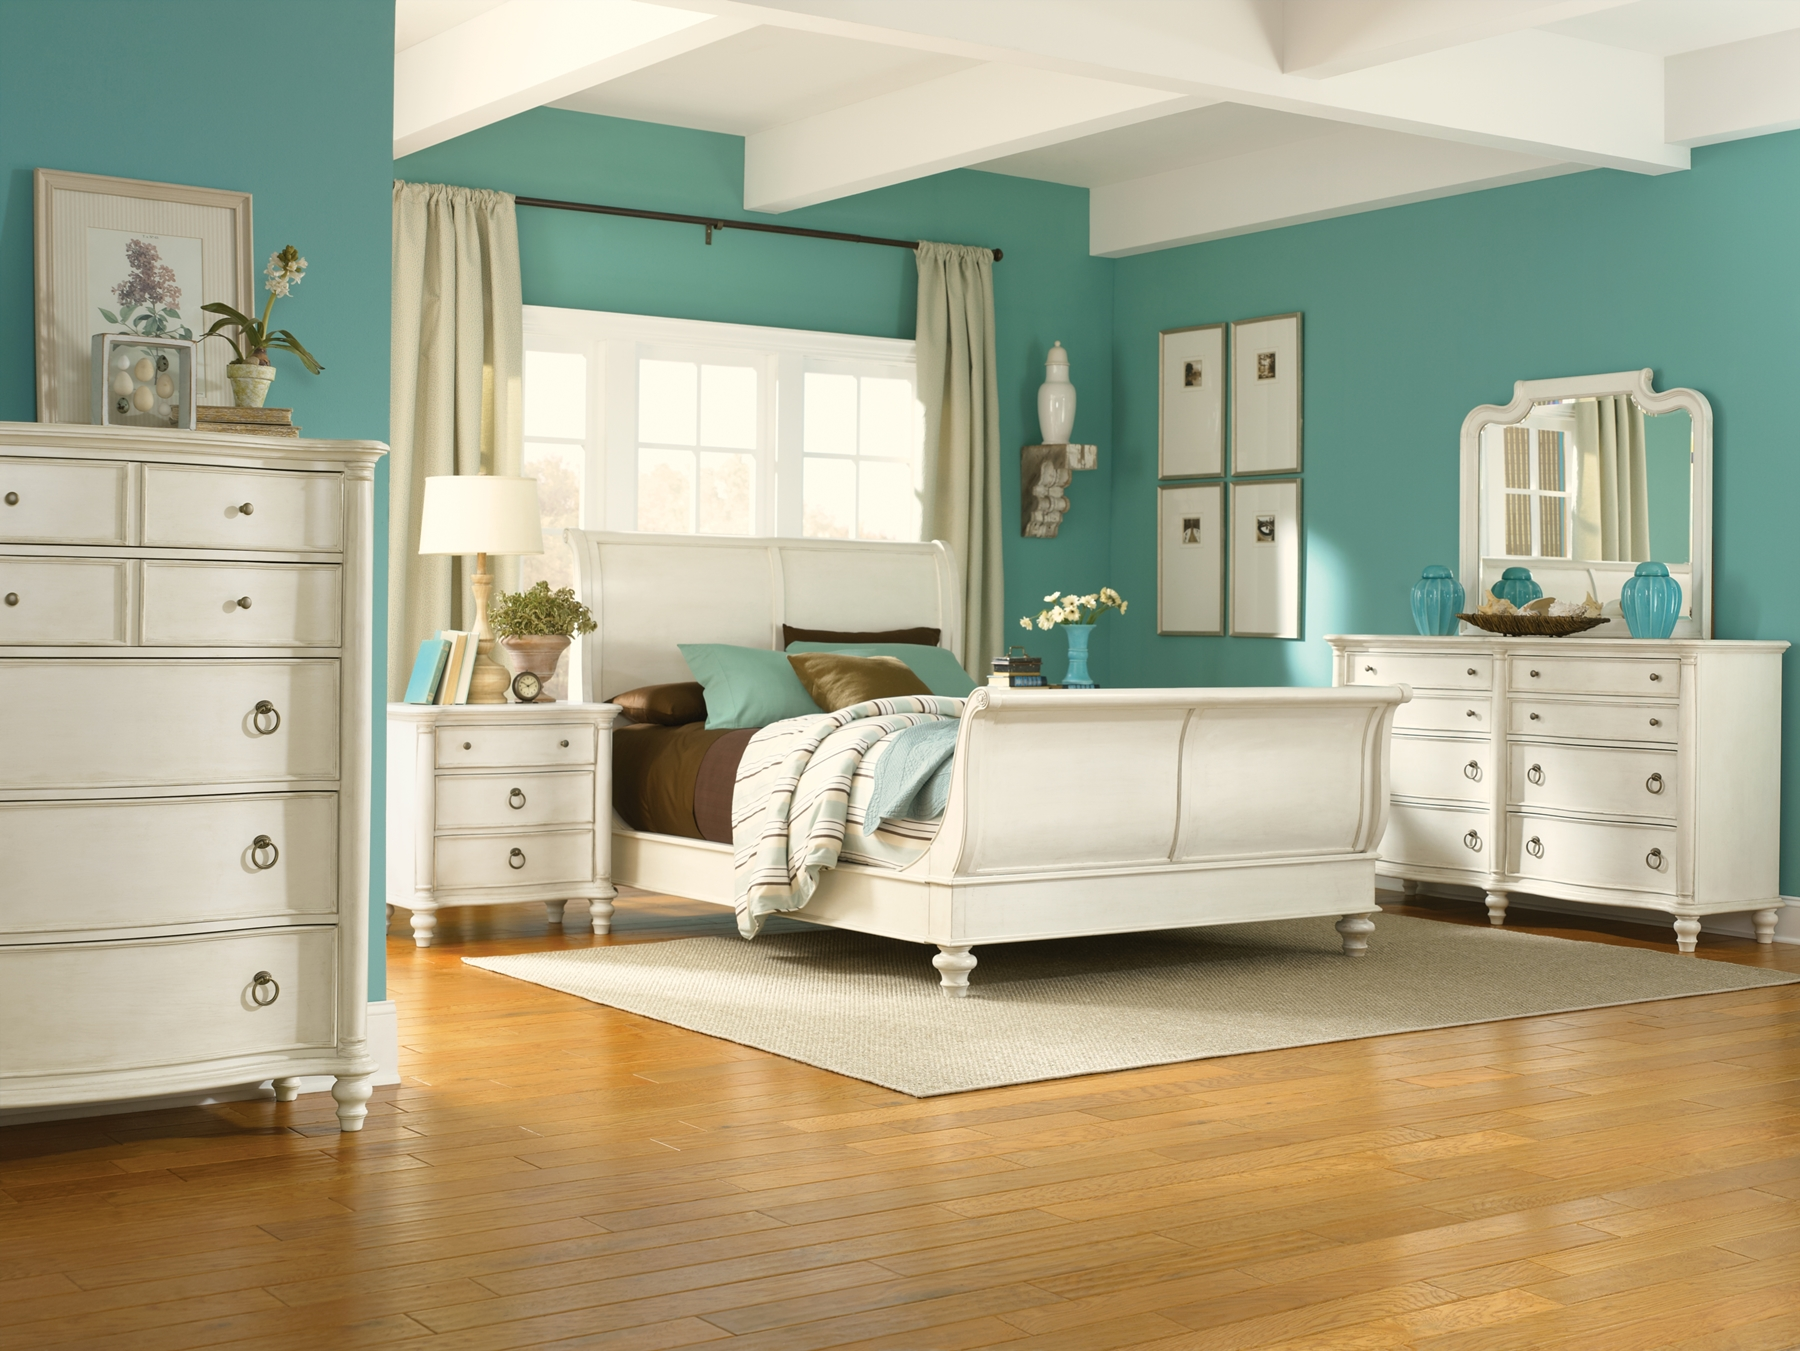 Furniture > Bedroom Furniture > Bedroom Set > White Sleigh Bedroom Set